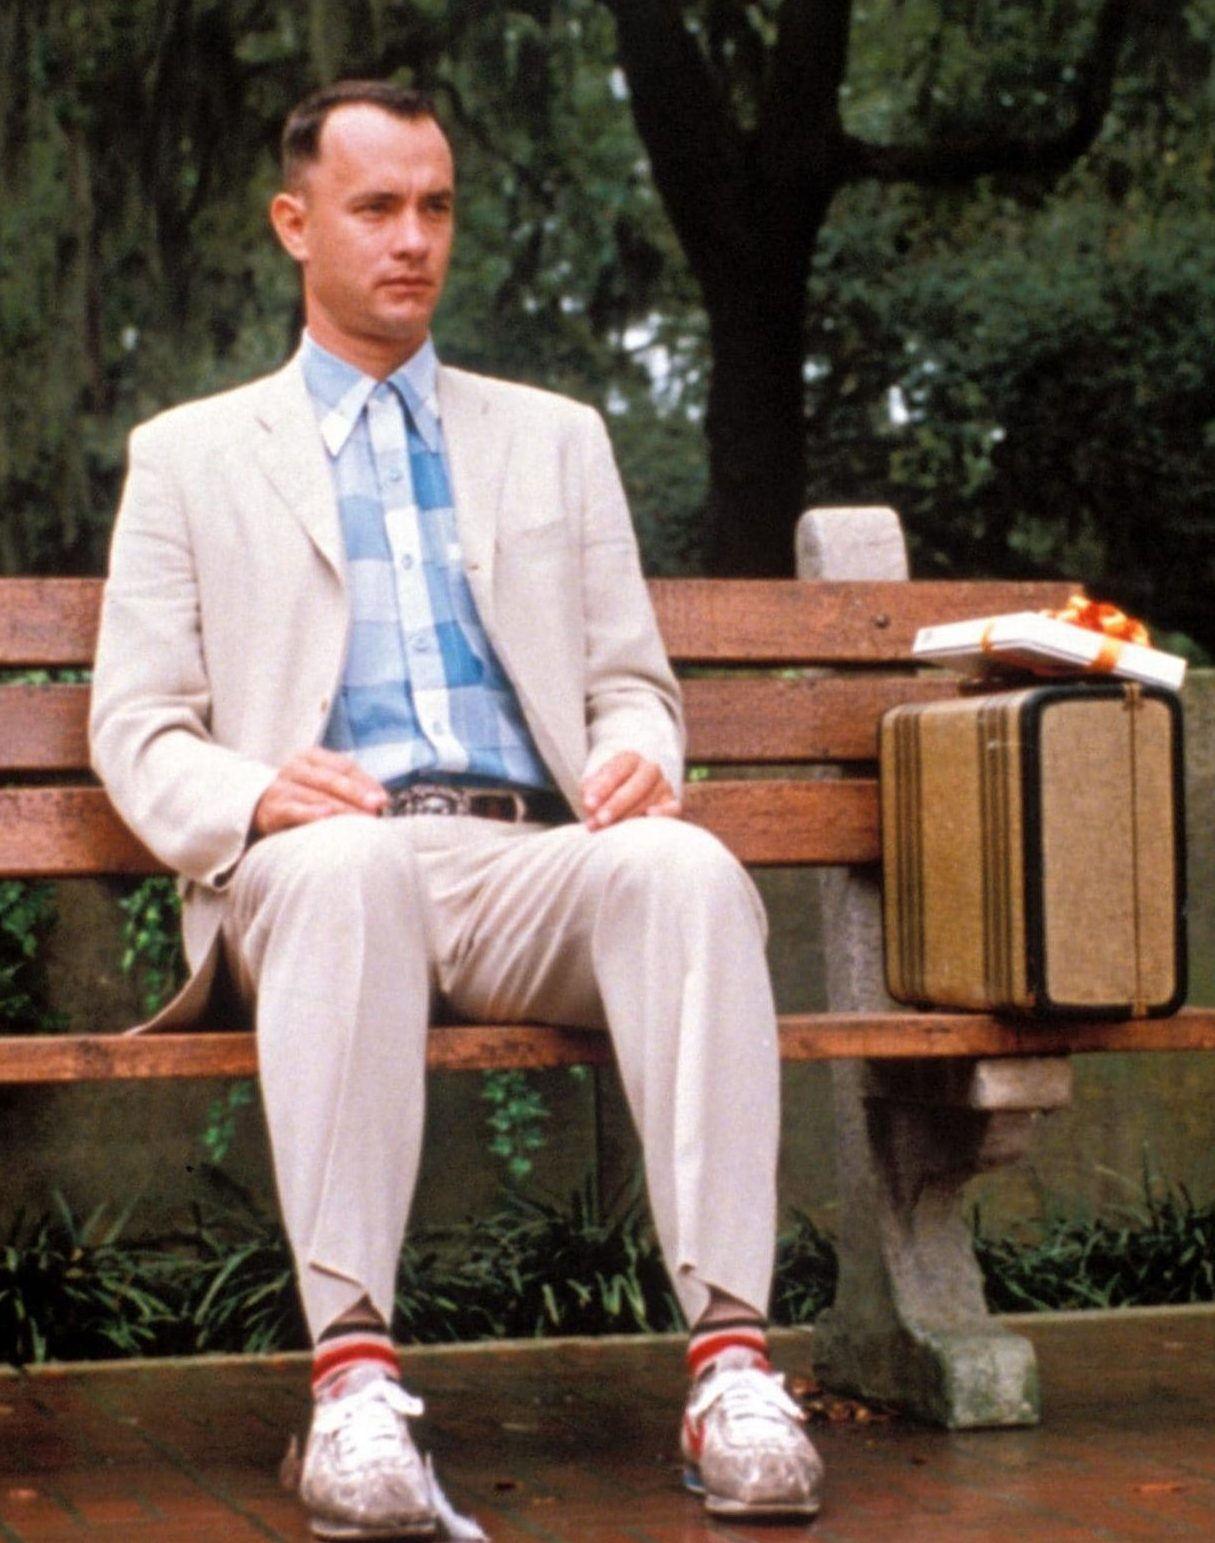 gump 18 e1589202904695 20 Things You Might Not Have Realised About Forrest Gump